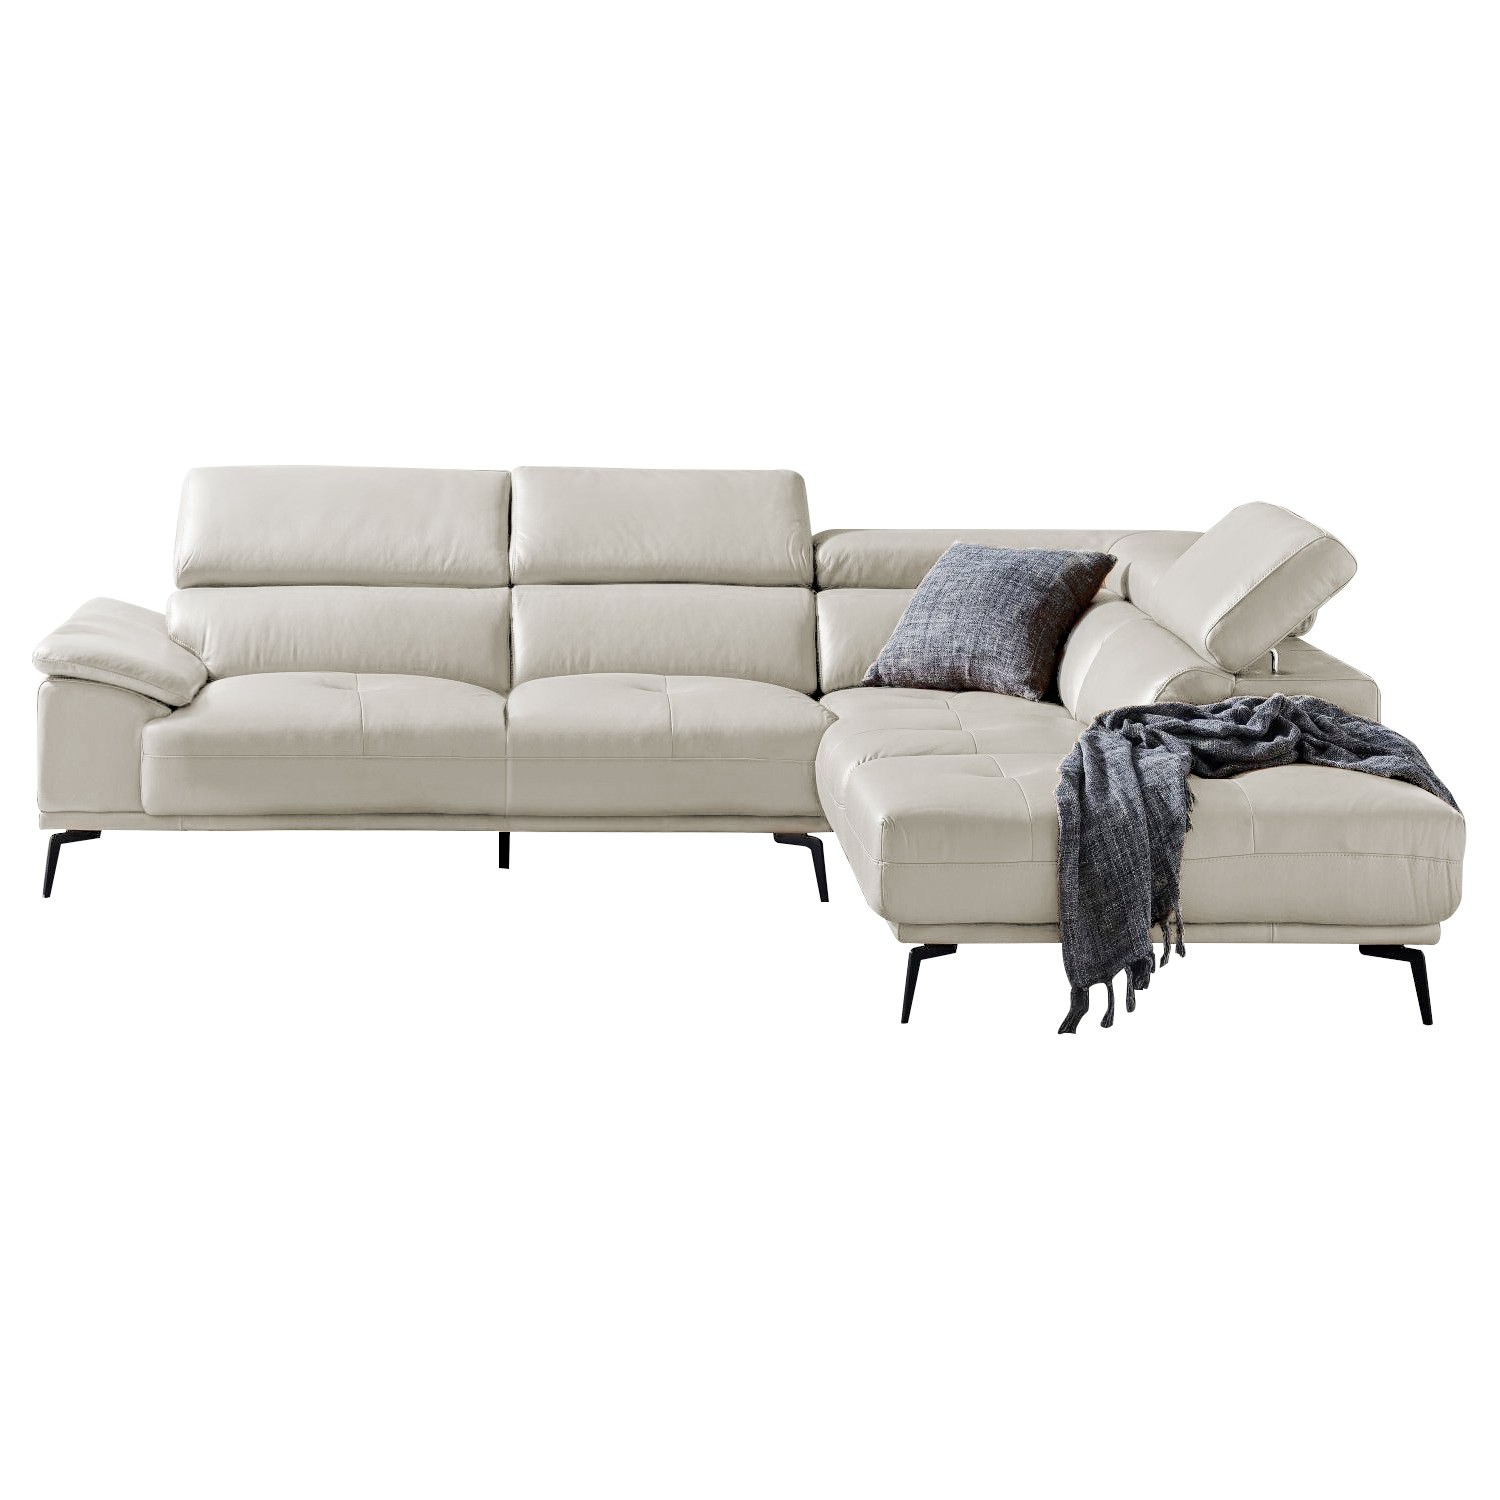 Martella Leather Corner Sofa, 2.5 Seater with Right Hand Facing Terminal, Silver